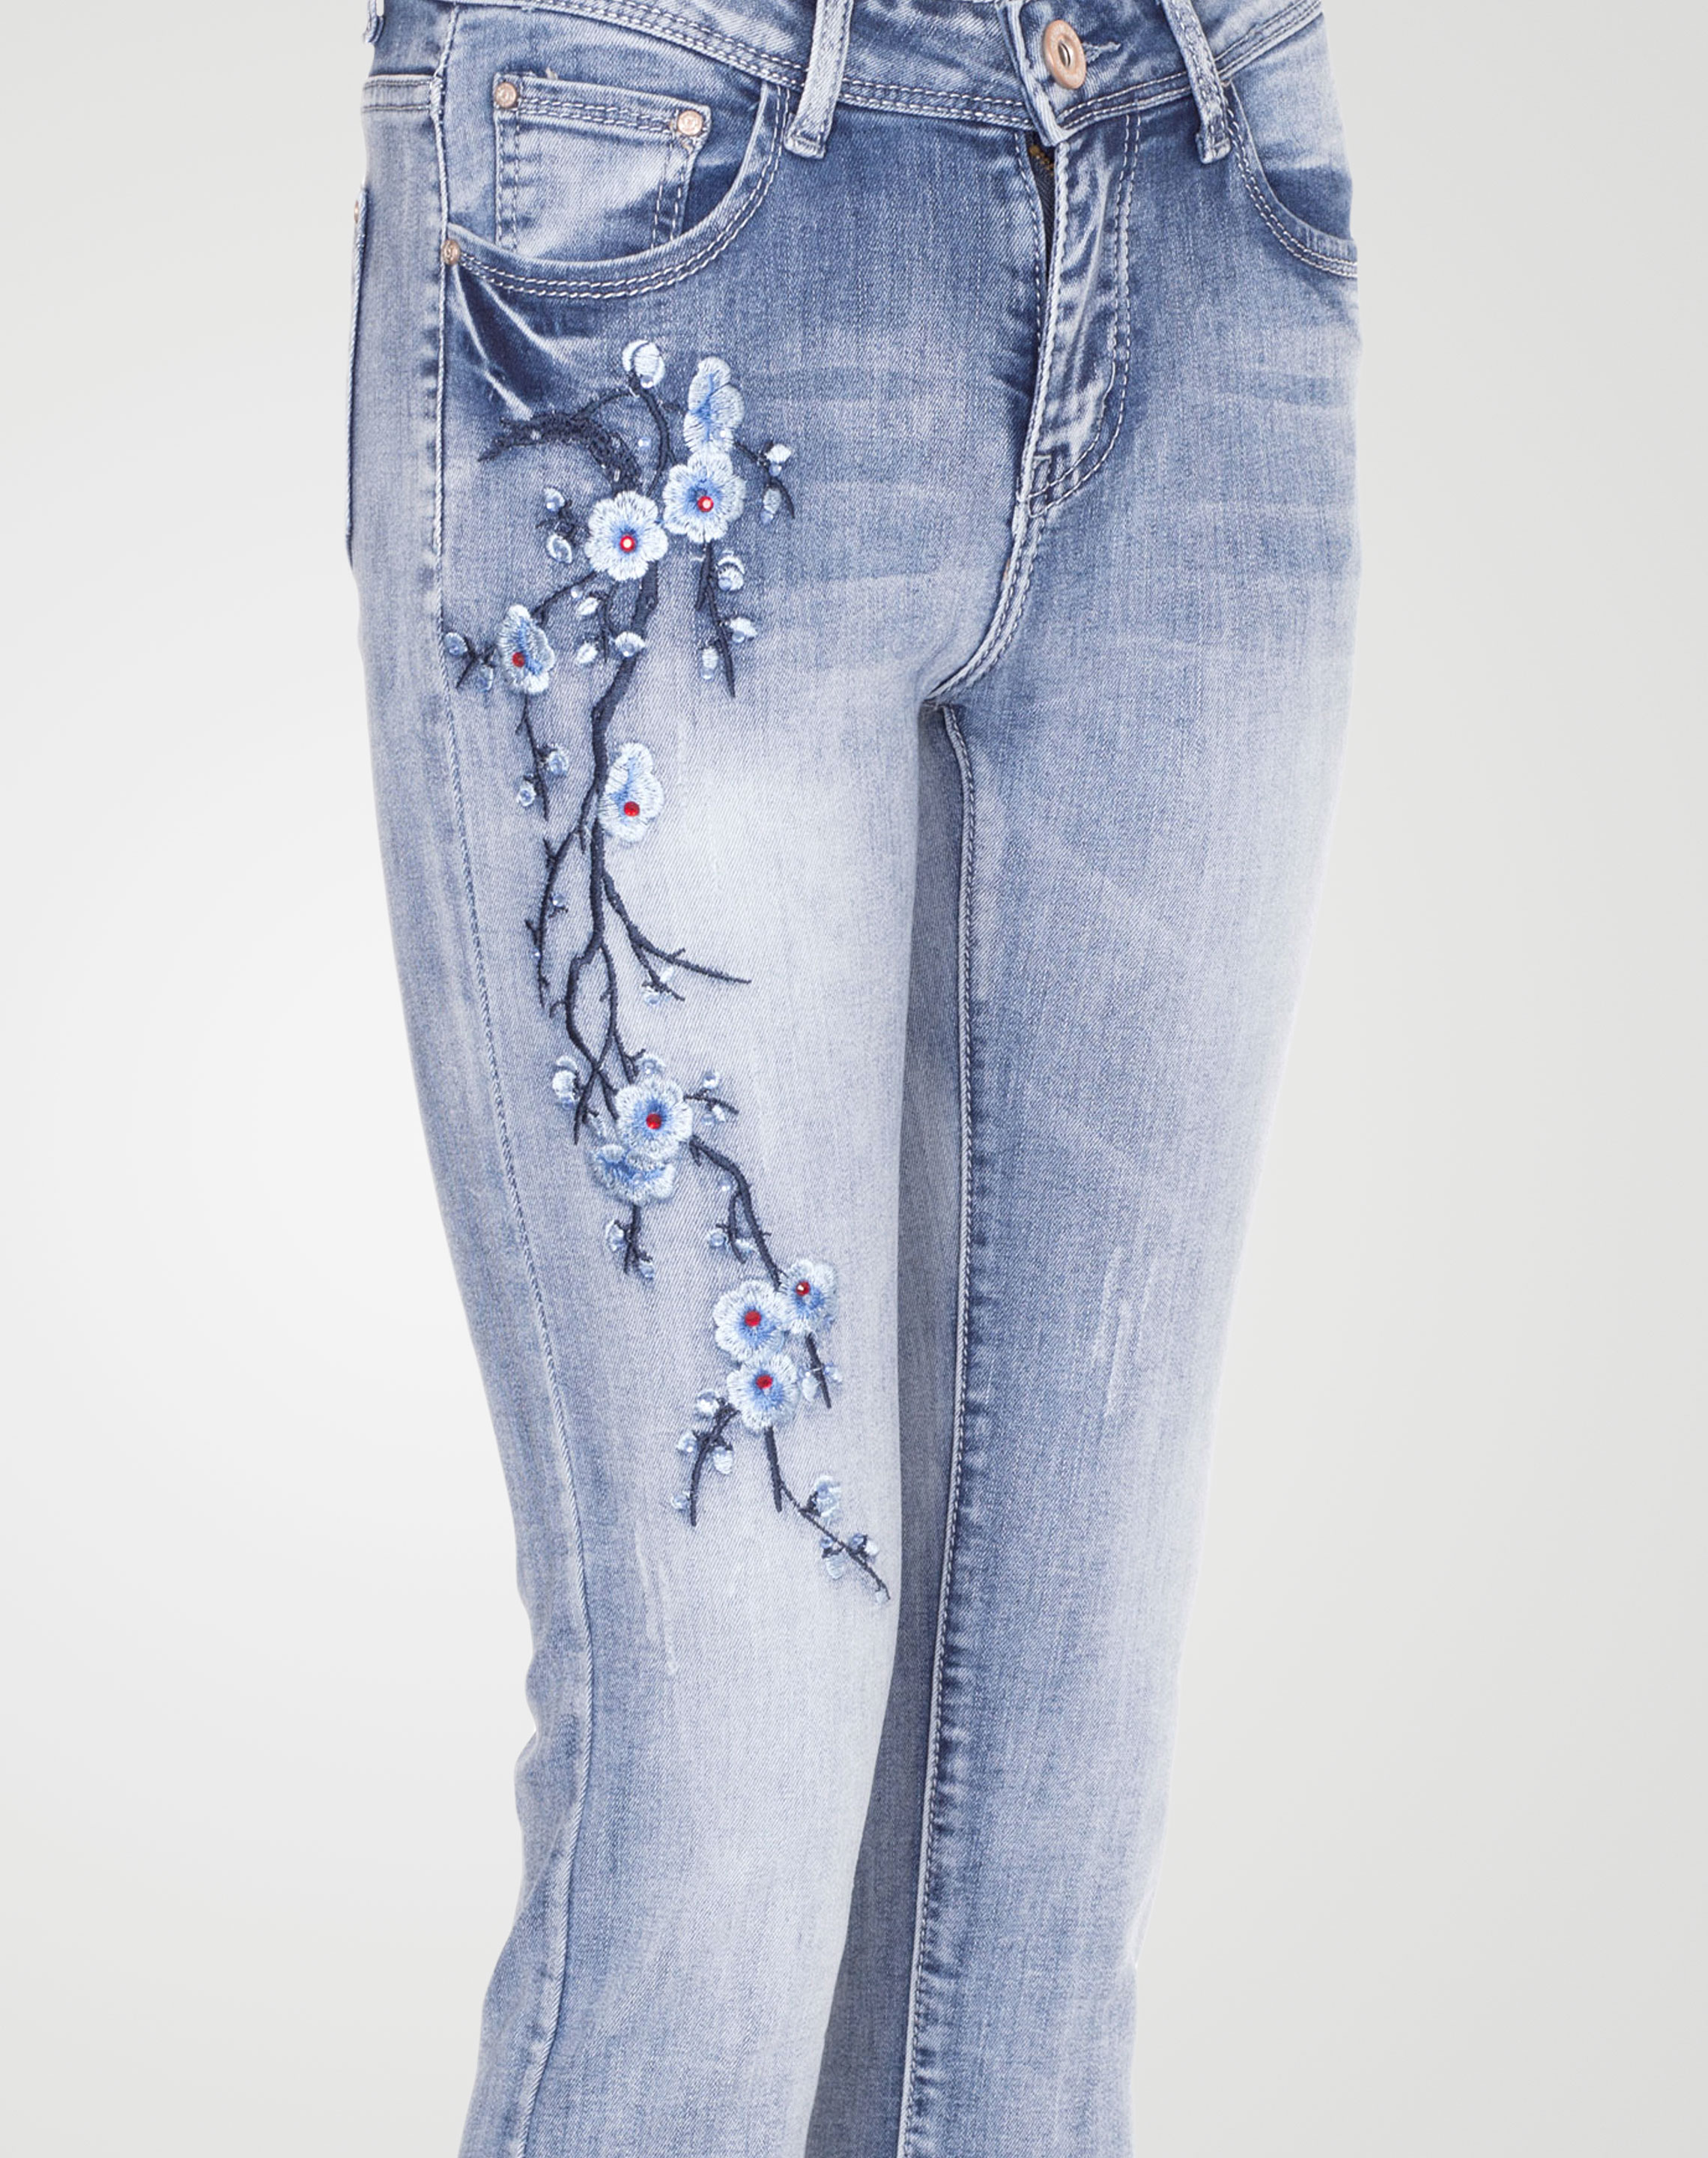 Image 2 of Womens Beads Badge Blue Jeans E416 color Blue and sizes 6, 8, 10, 12, 14, 16 from Noroze